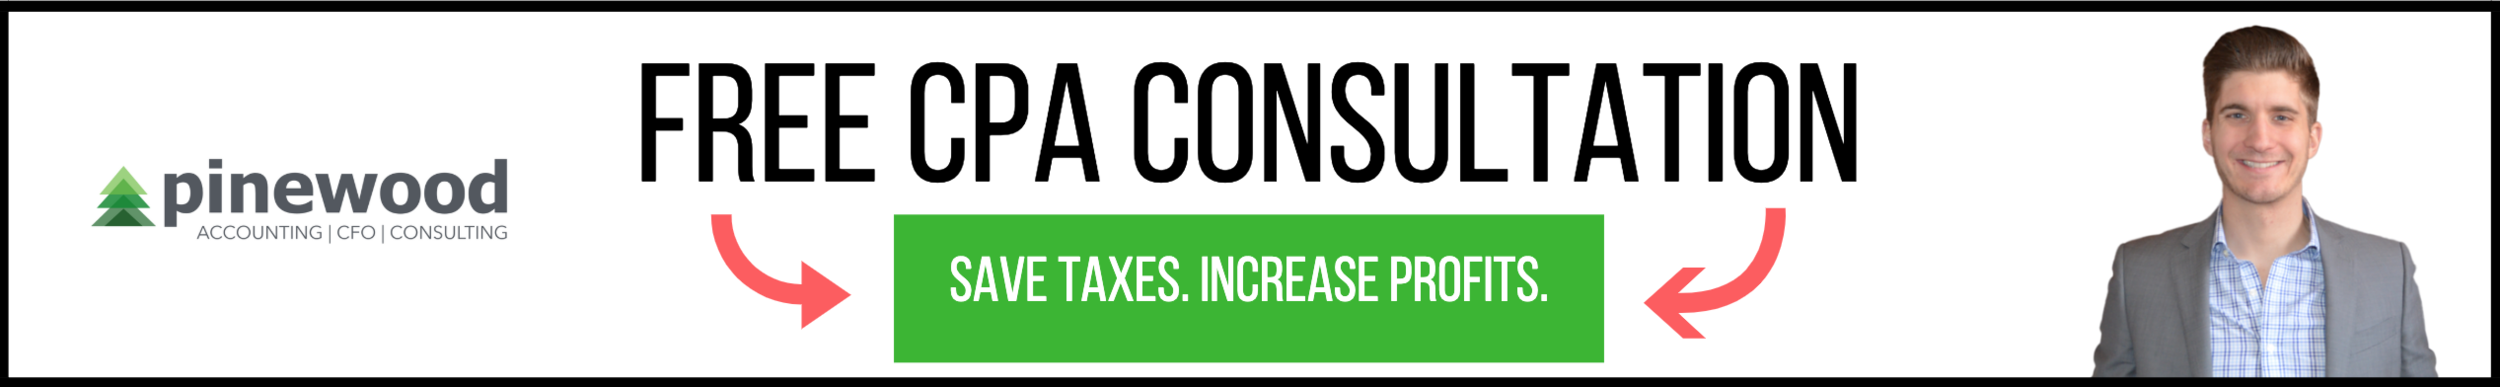 Free CPA Consultation.png